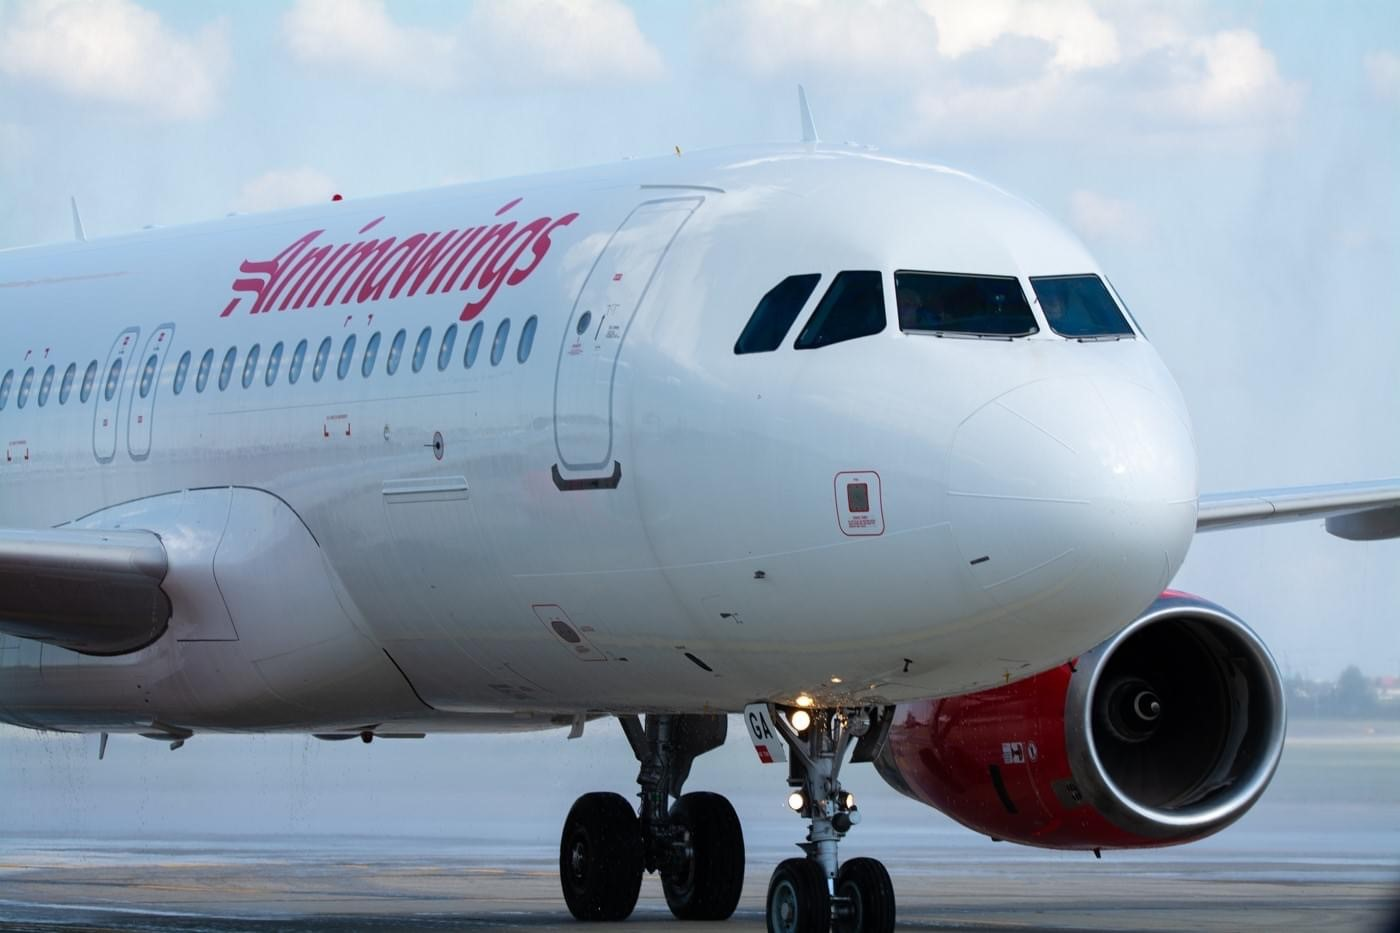 Airbus A320 fra Animawings. (Foto: Animawings | Facebook)